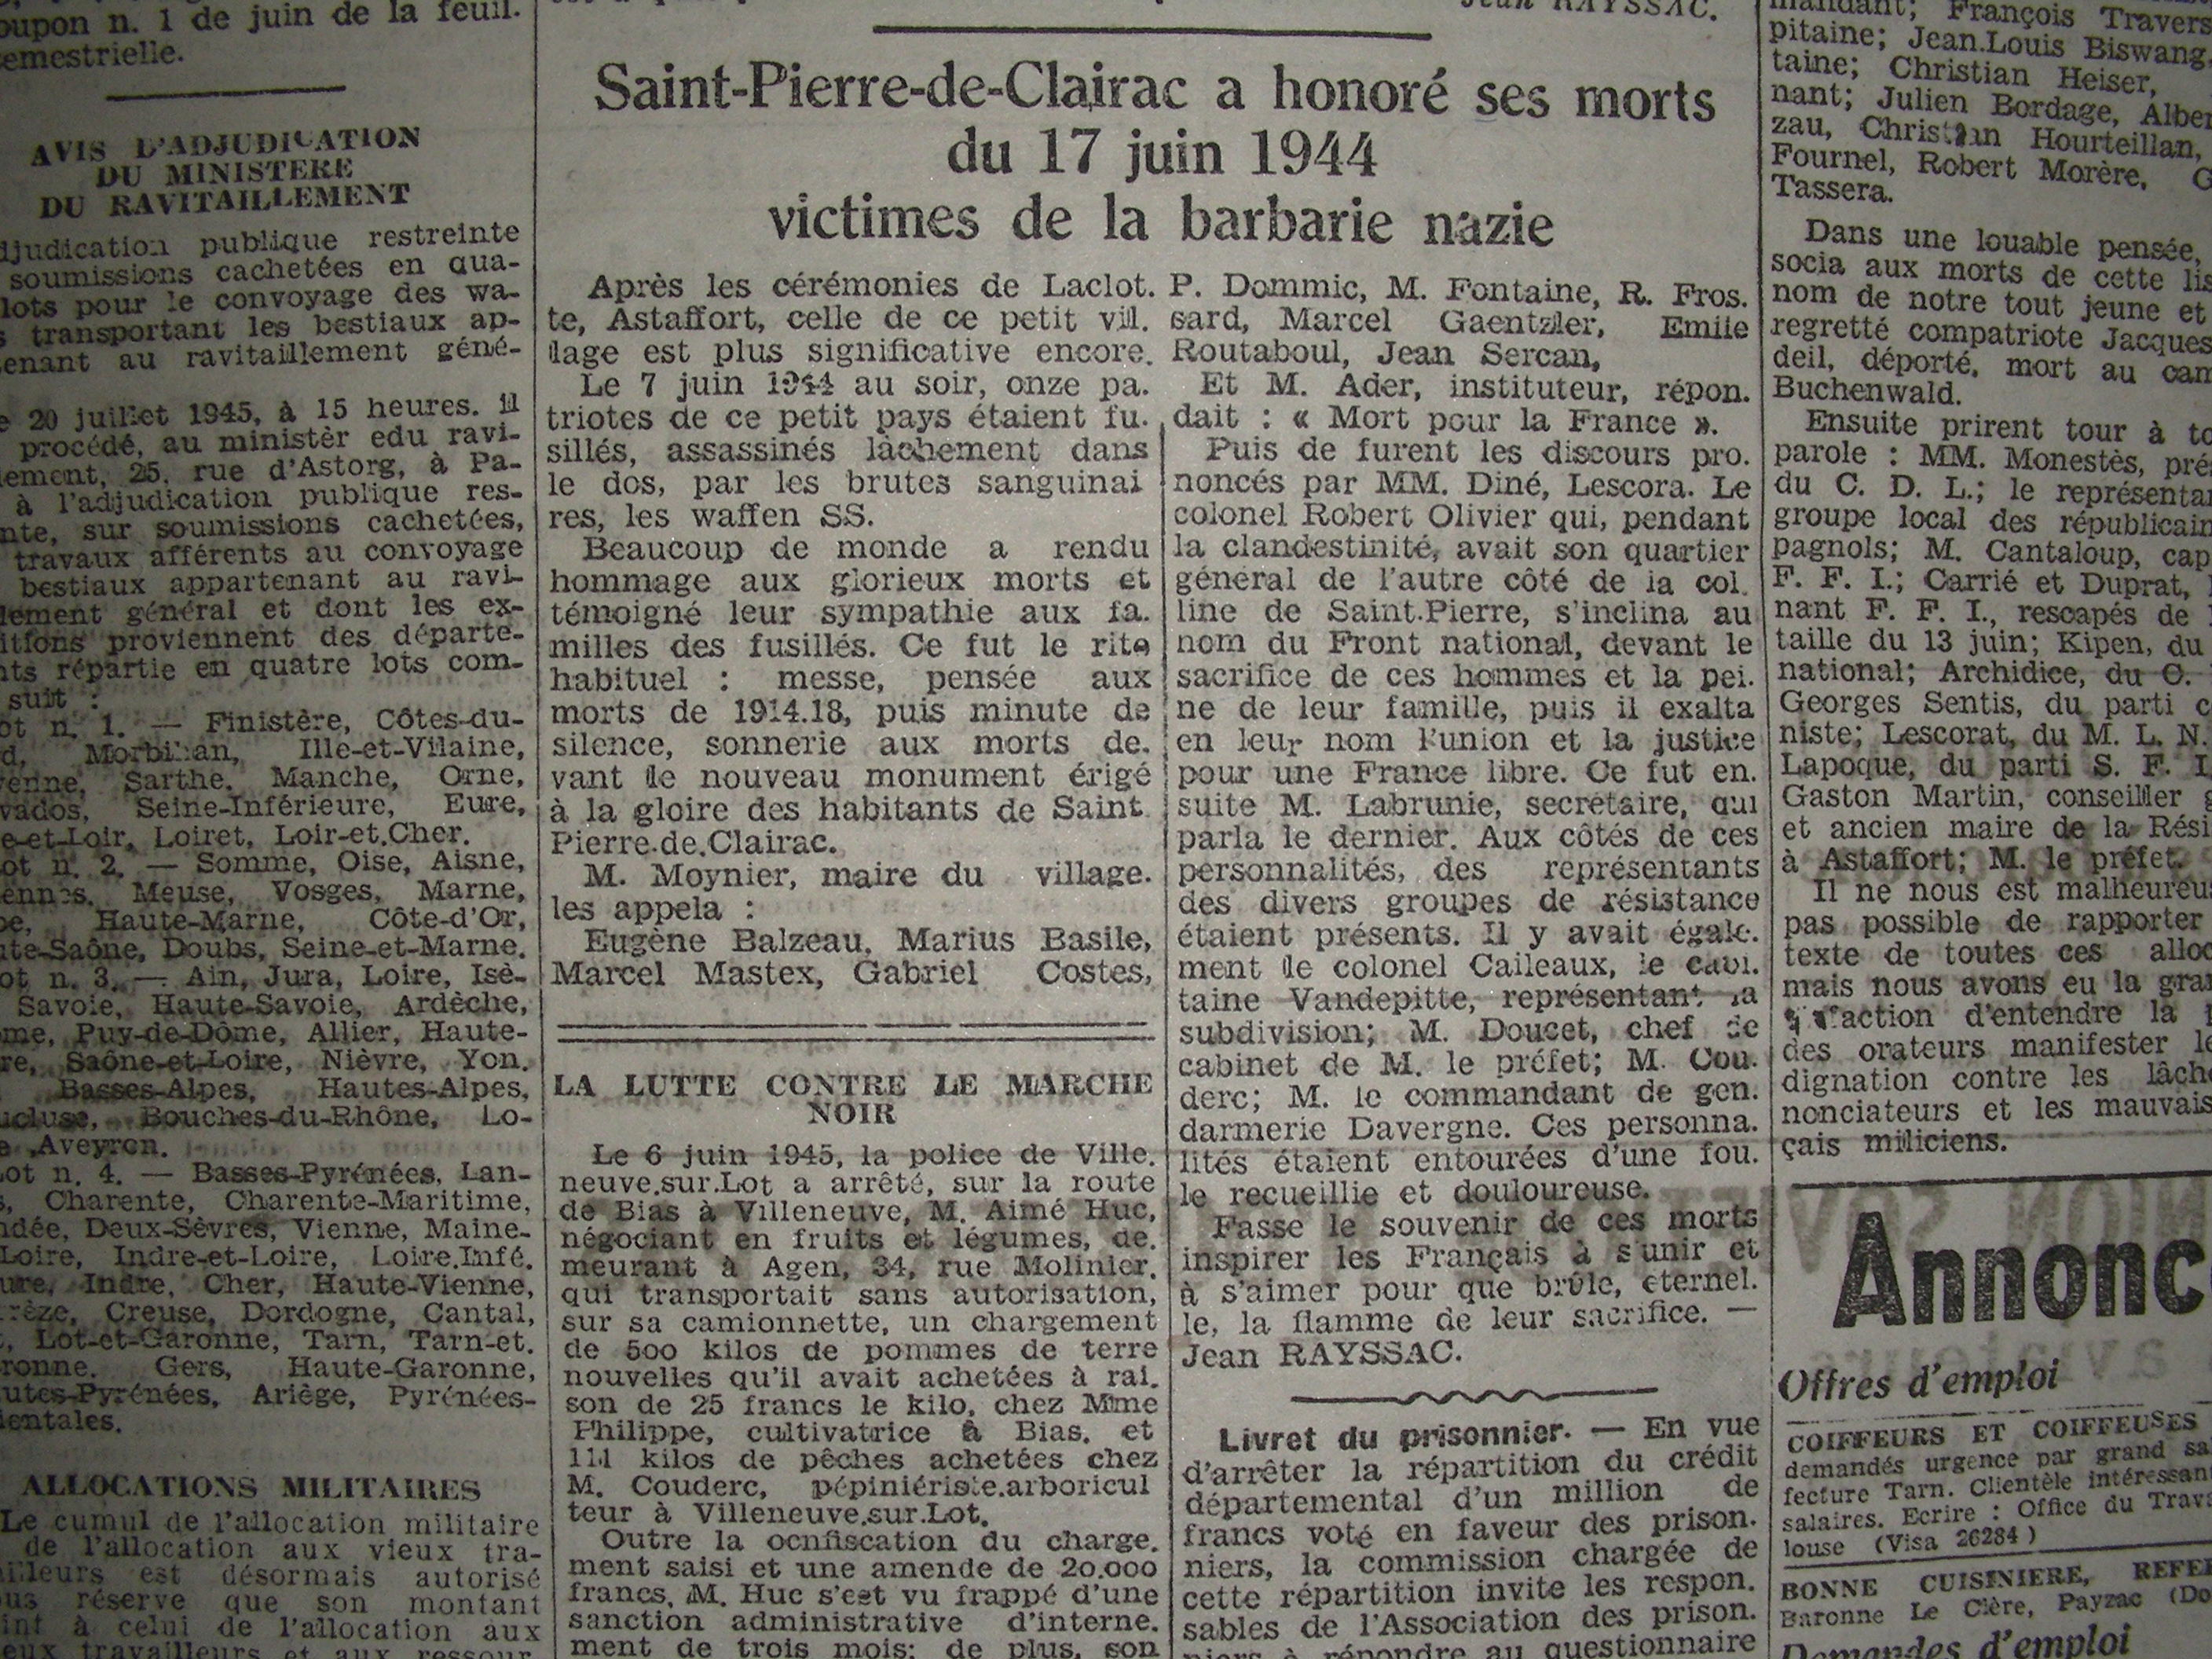 Journal LE PATRIOTE 19 juin 1945